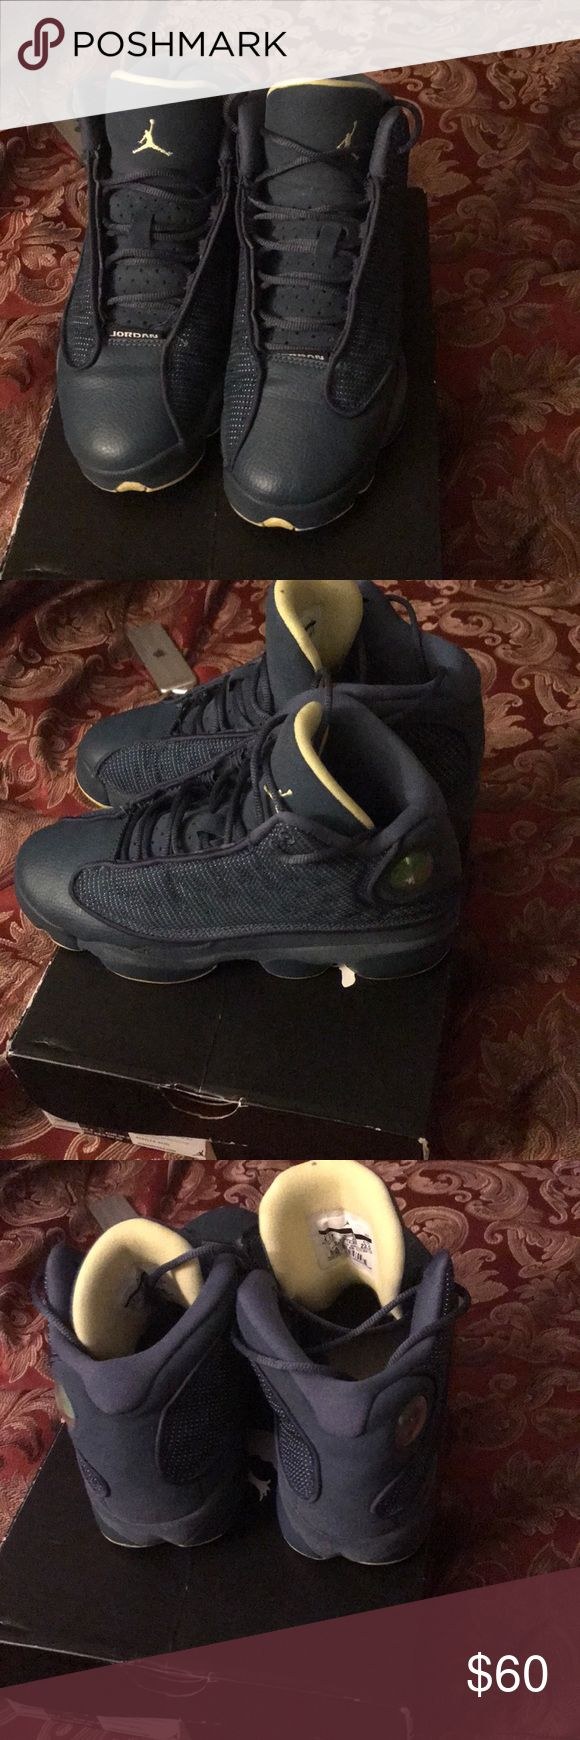 """Retro Jordan 13 """"Squadron"""" blue and yellow Excellent condition. Retro 13s. Worn a handful of times. Size 4.5 in boys. Jordan Shoes Sneakers"""